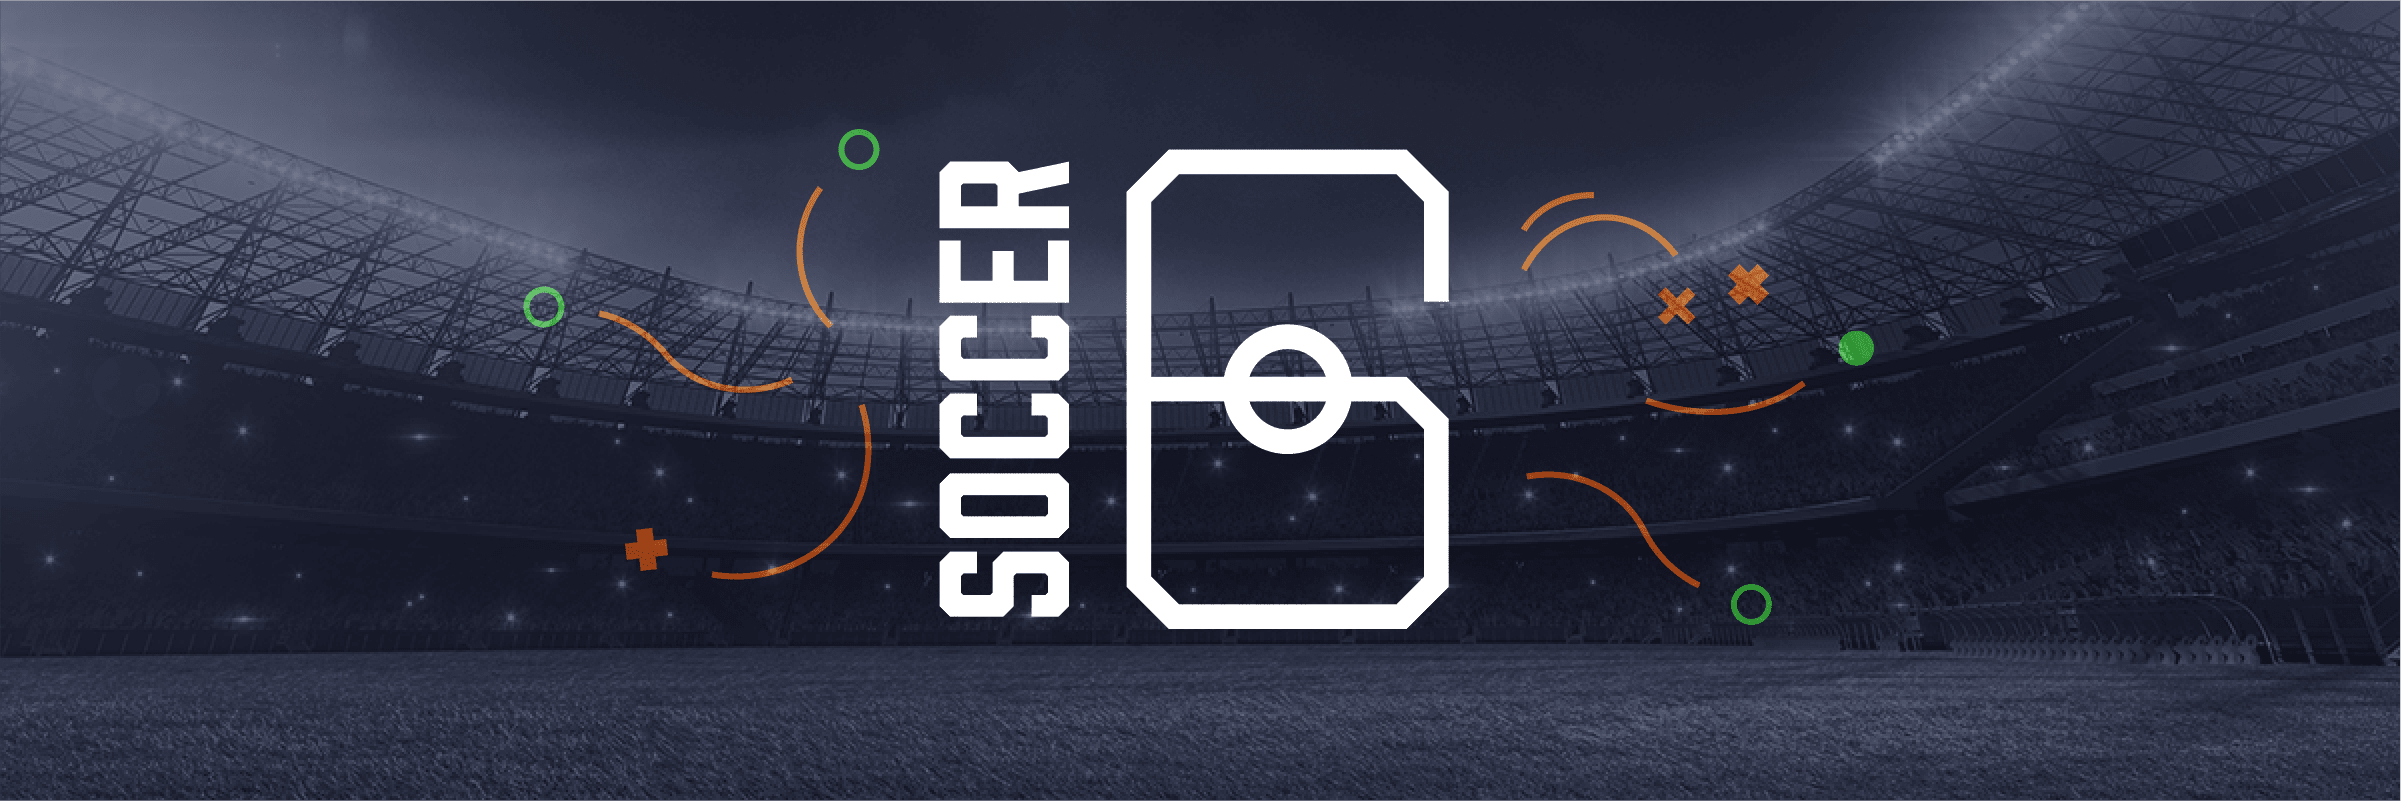 Six Free Soccer Tips